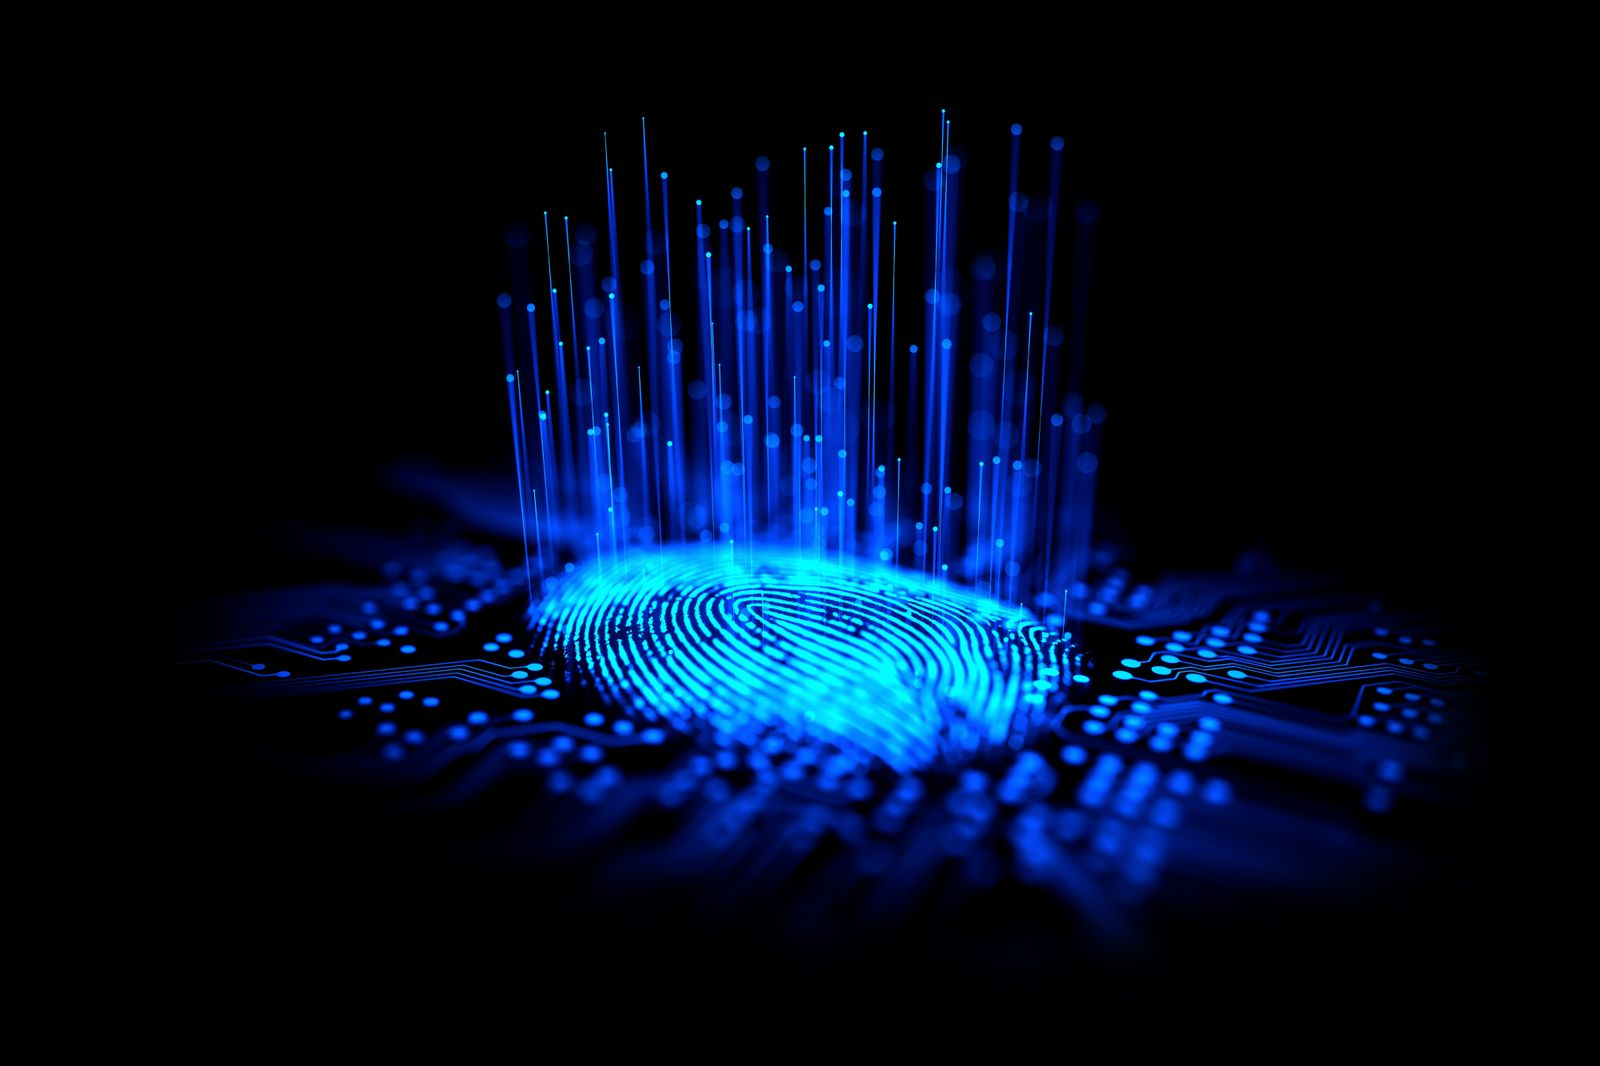 Digital fingerprint, conceptual illustration